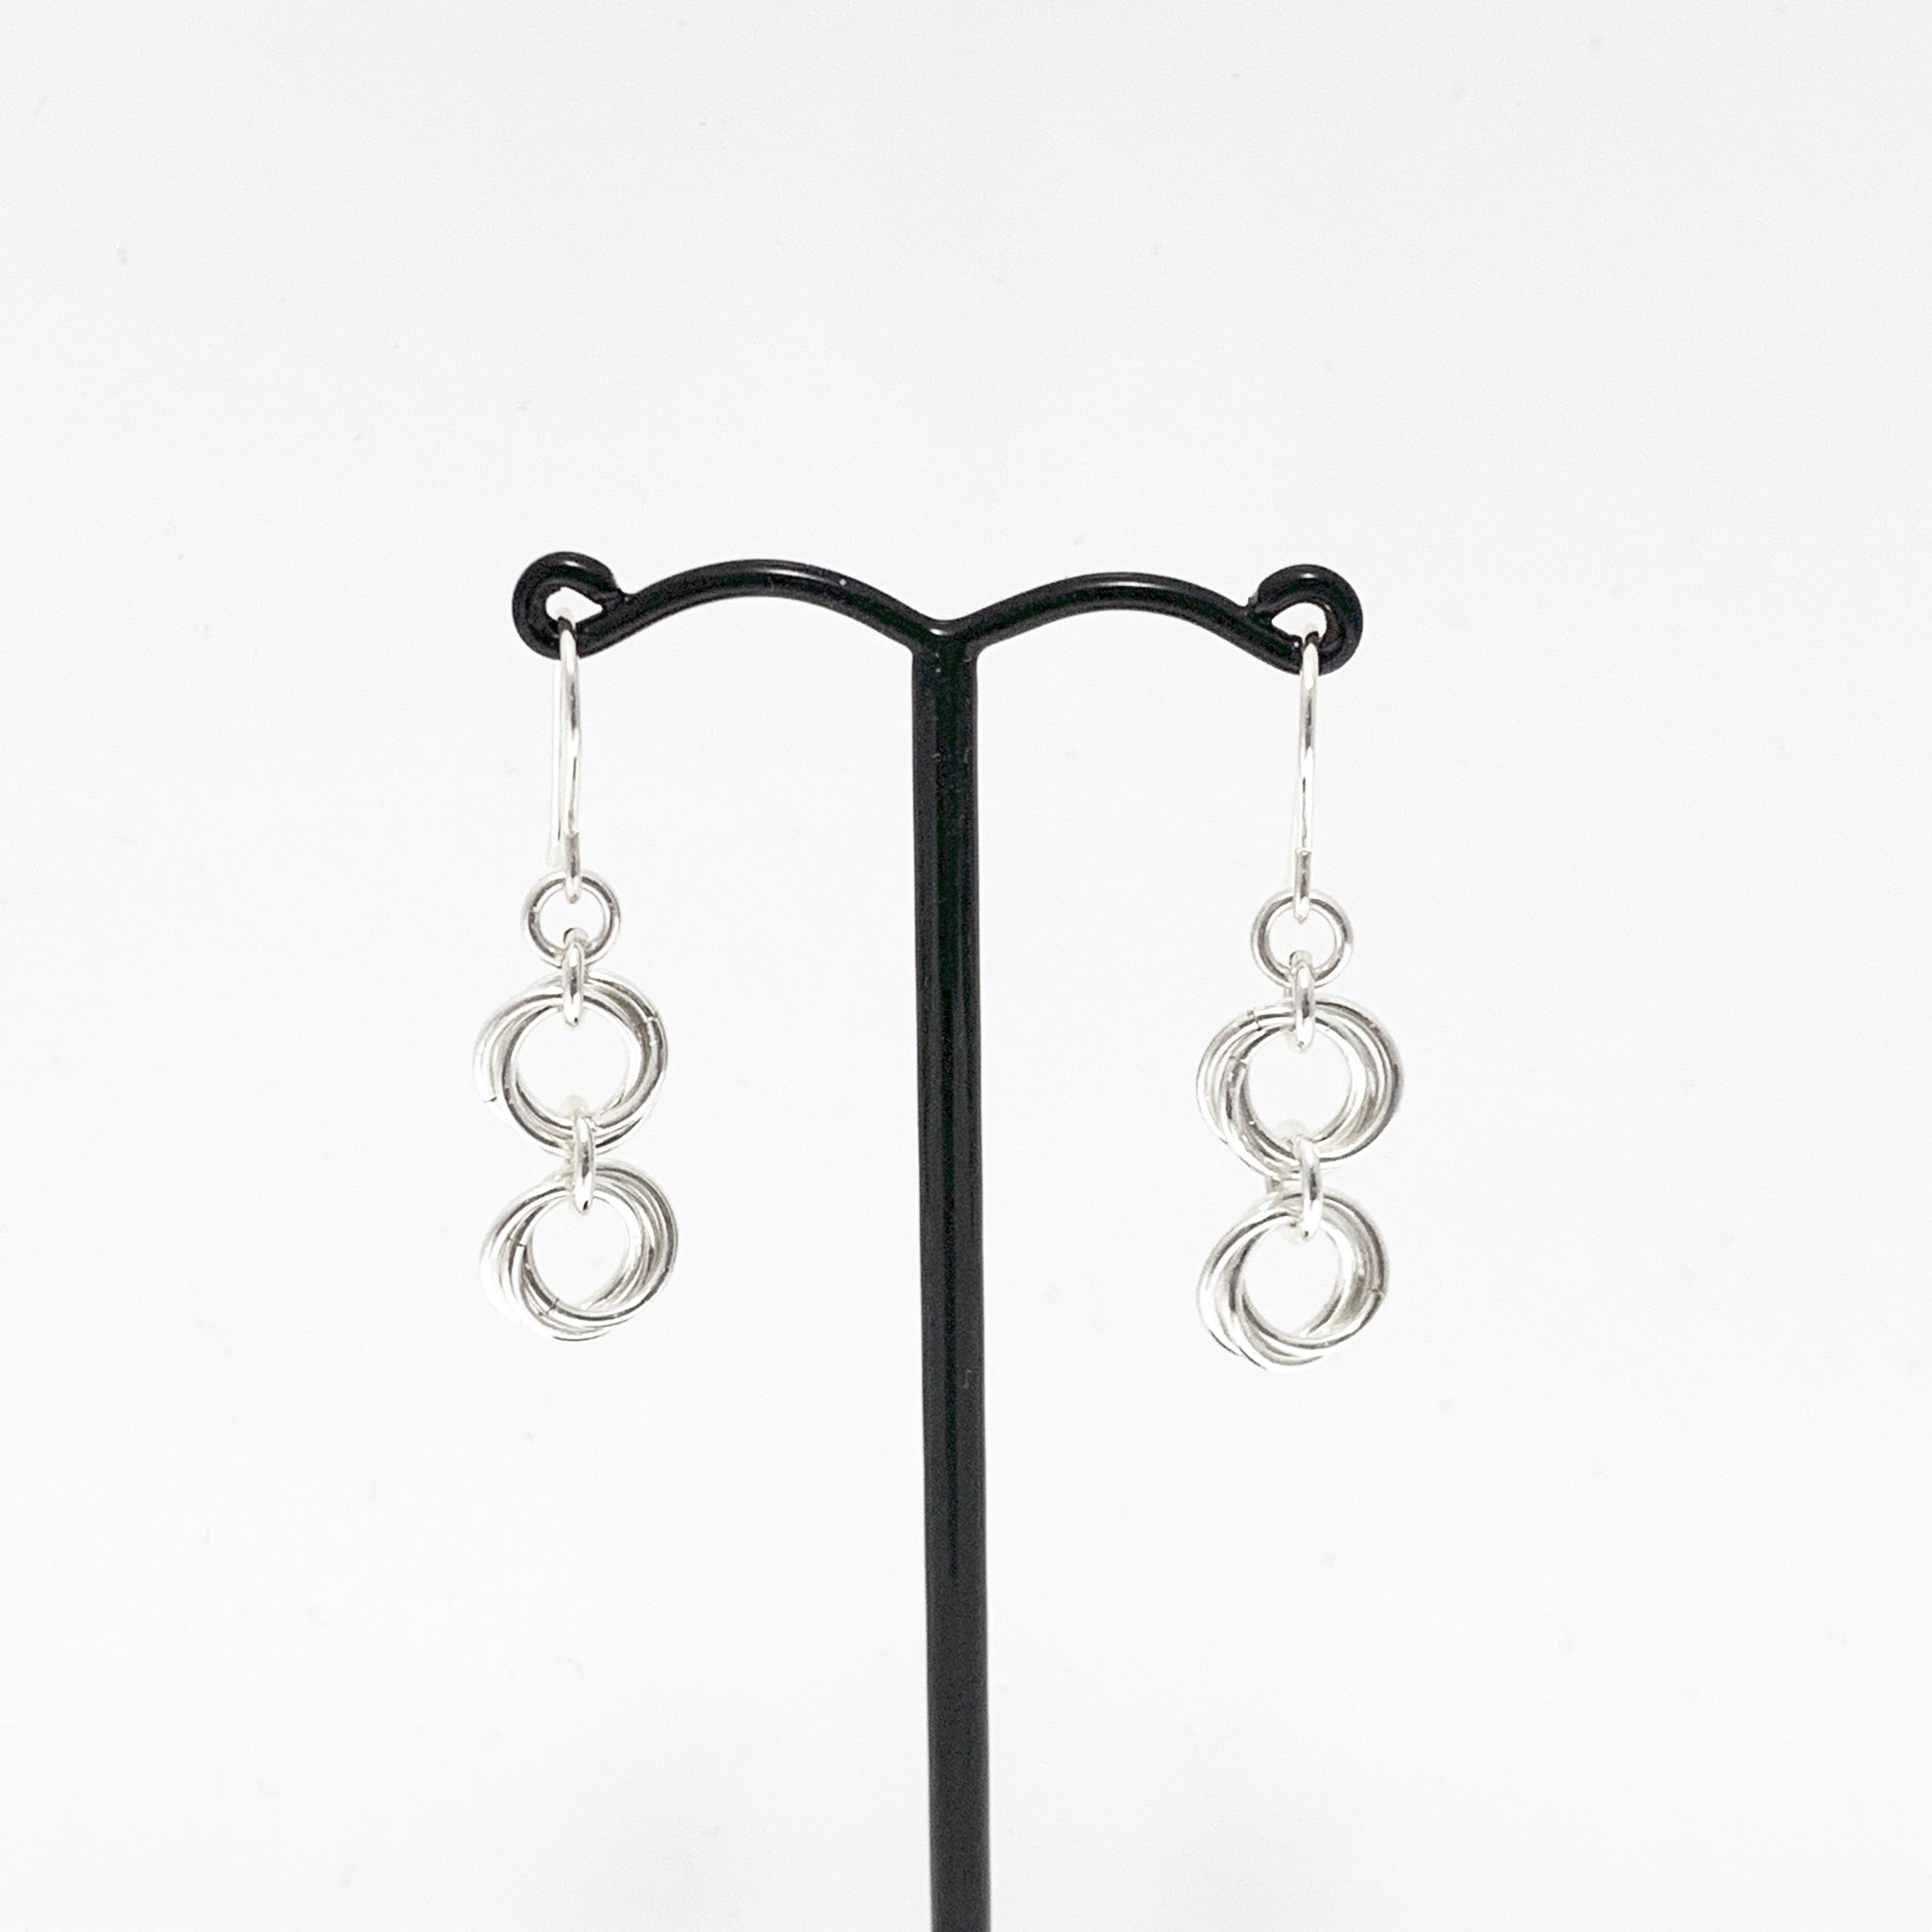 'Ava' 2 Silver earrings